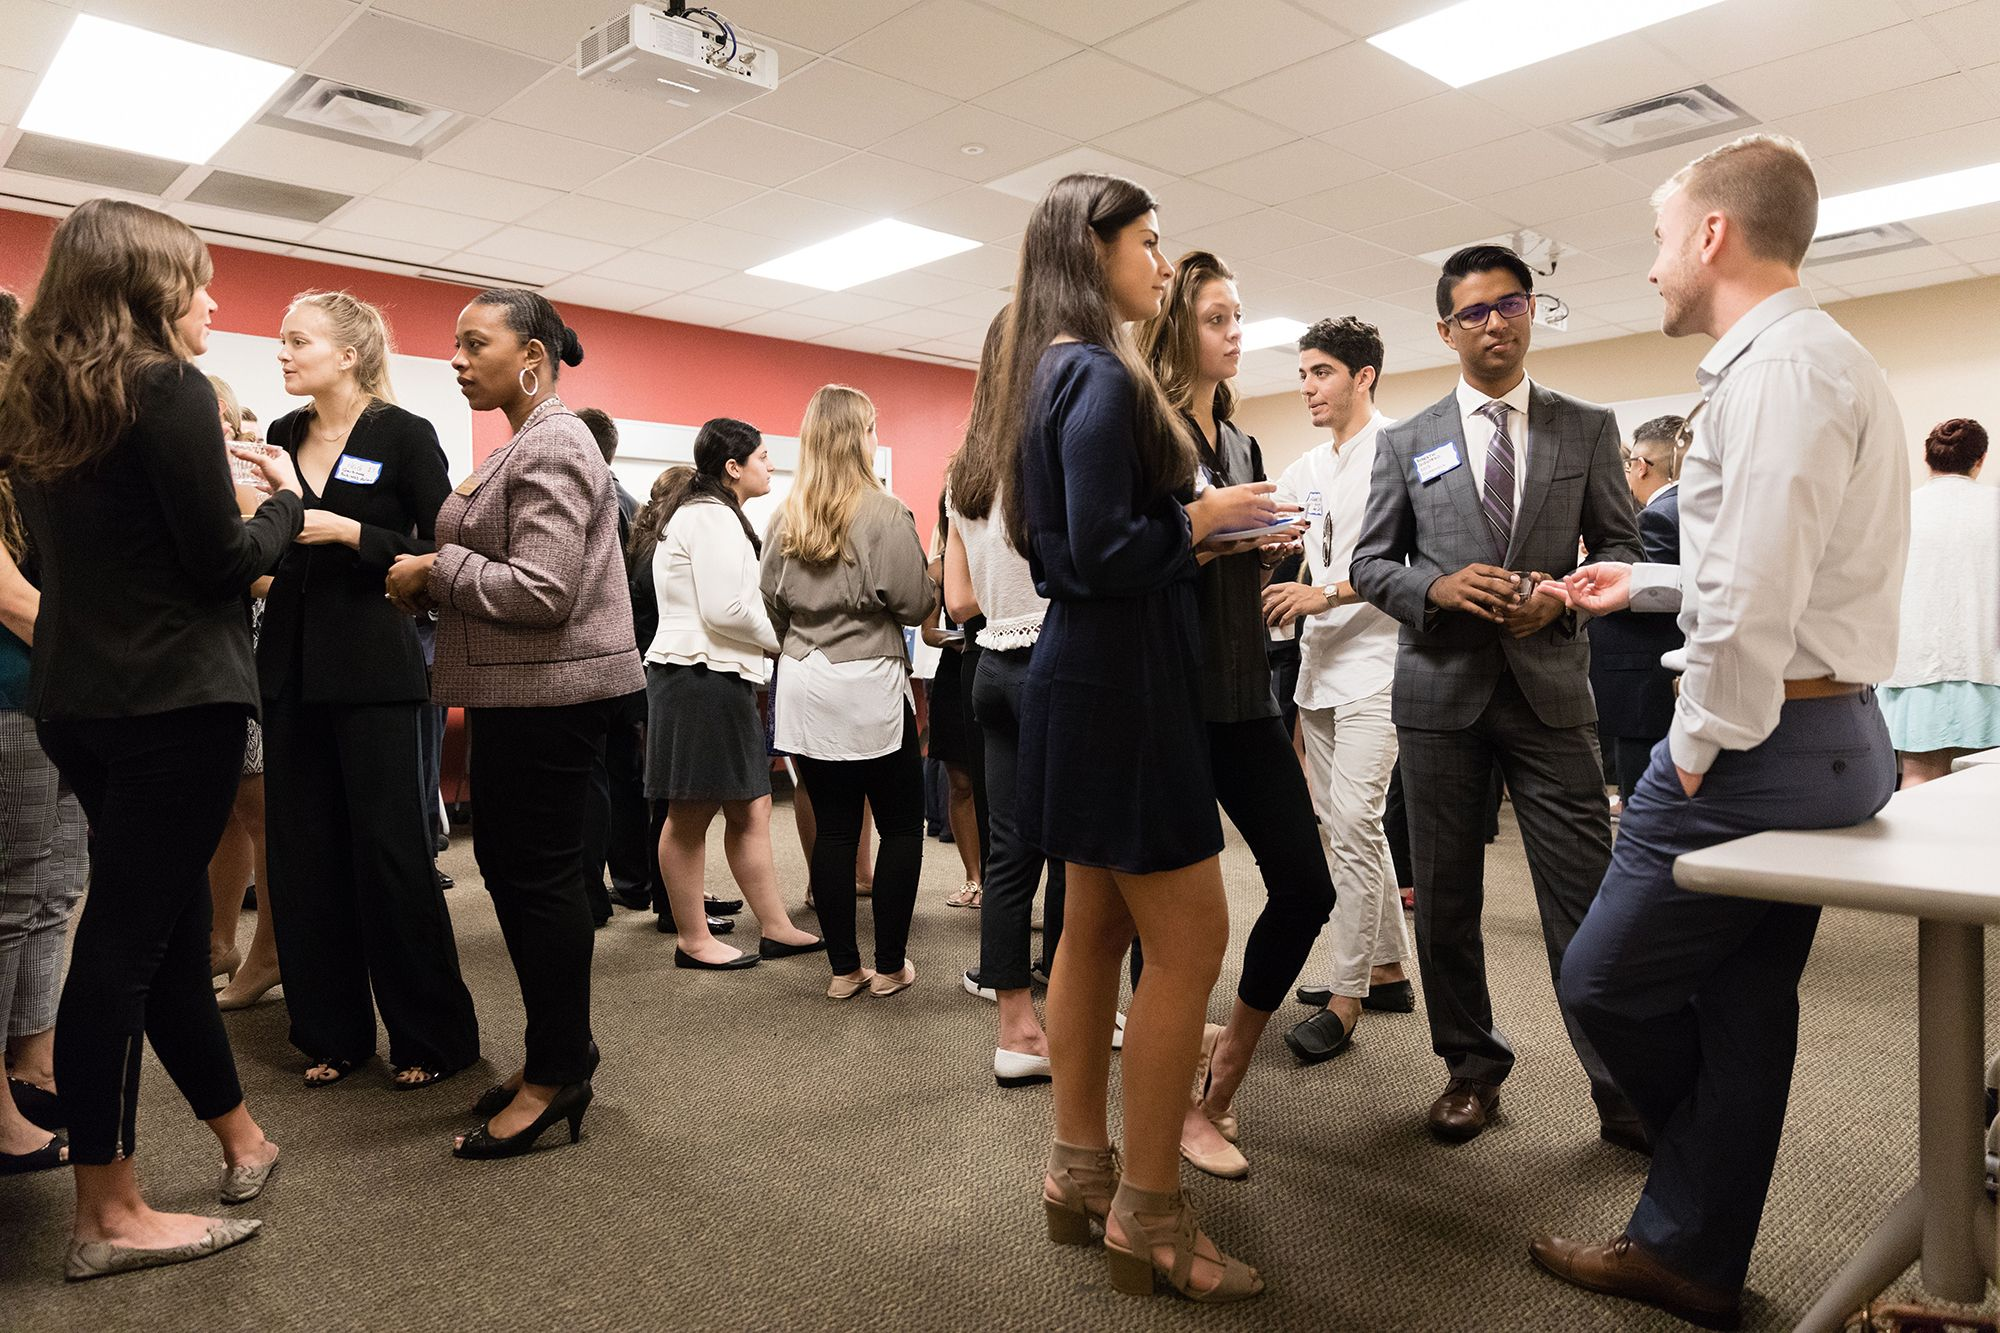 A group of students dressed in business attire talking and networking.